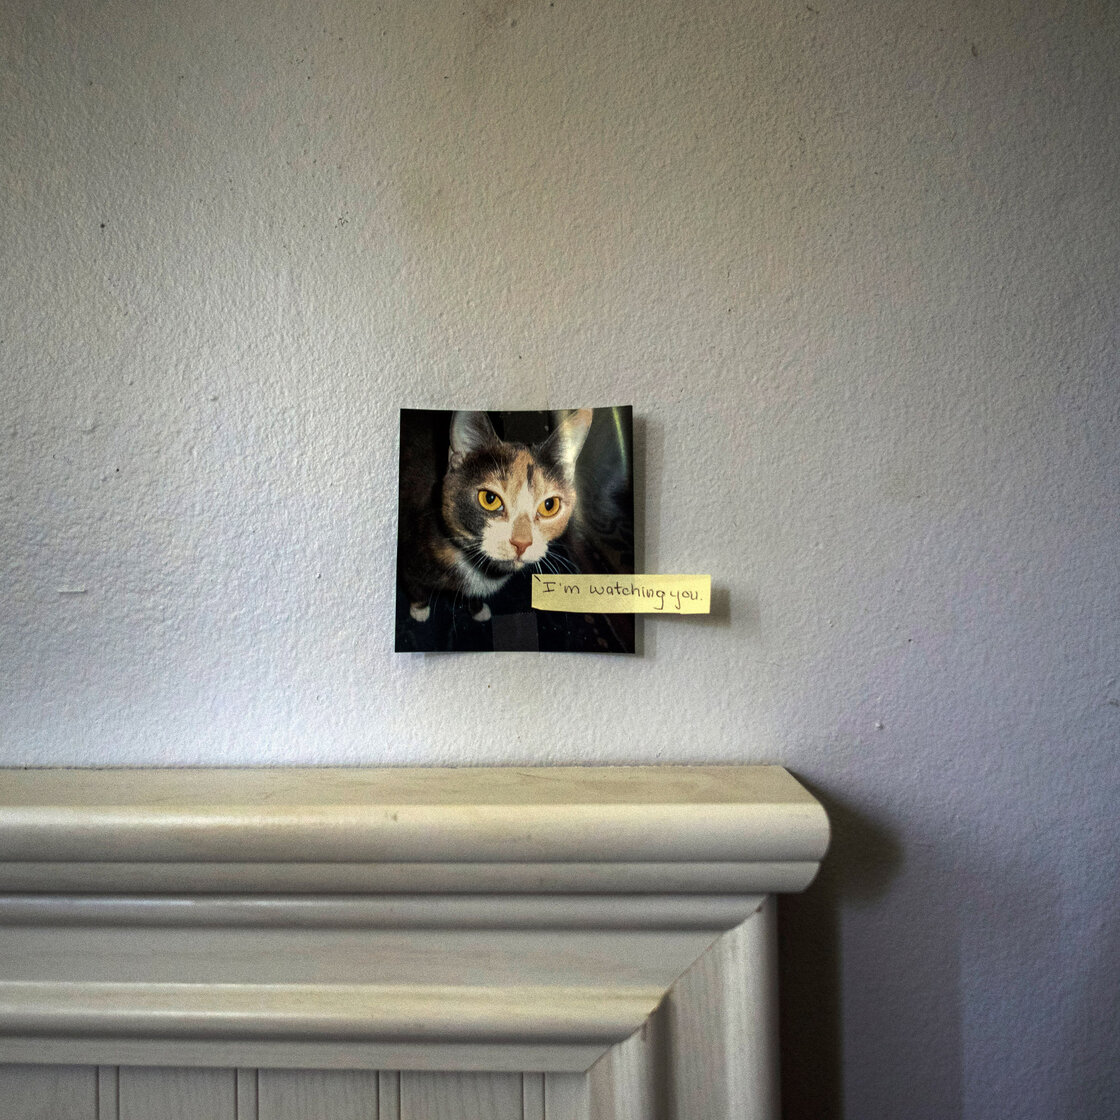 "Meghan keeps a photo of her cat, Boo, on the wall in her bedroom. ""She would stay in her room and keep to herself,"" Kathy, Meghan's mother, says. ""Sometimes that was a good thing because her depression just sucked the life out of you."""